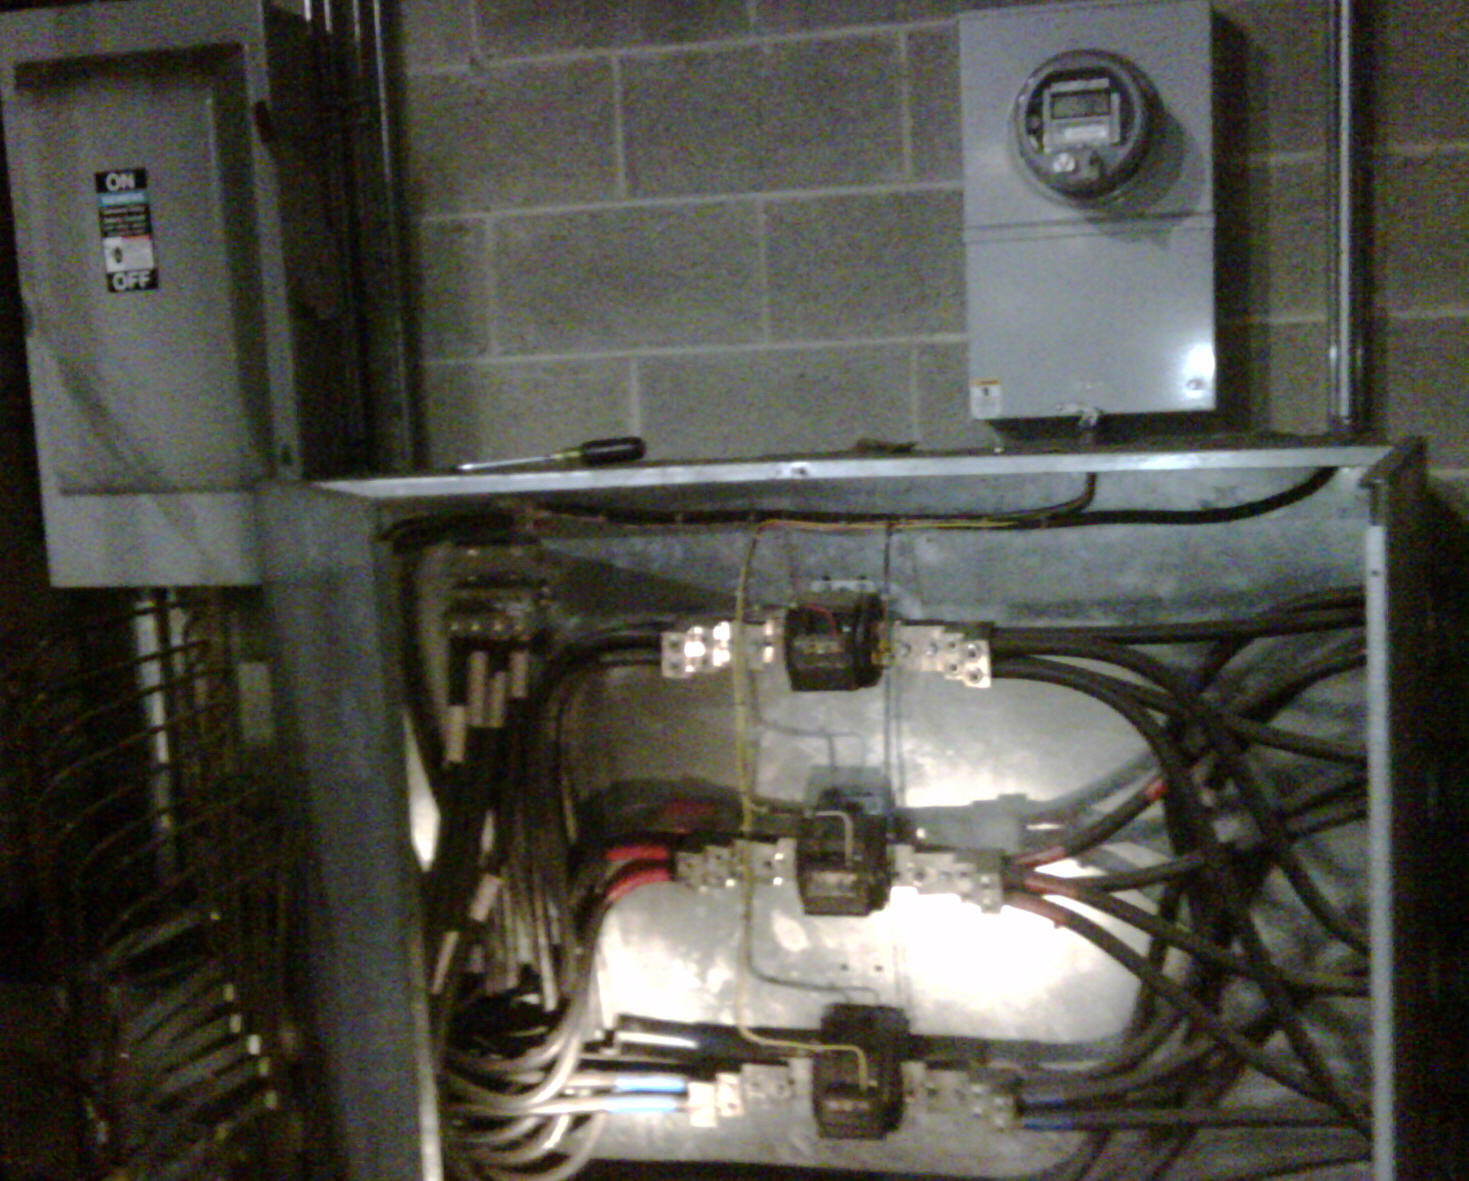 Service Entrance, 2Phase, 3Phase, Service Conductors, Service Equipment,  Service Grounding Philadelphia.